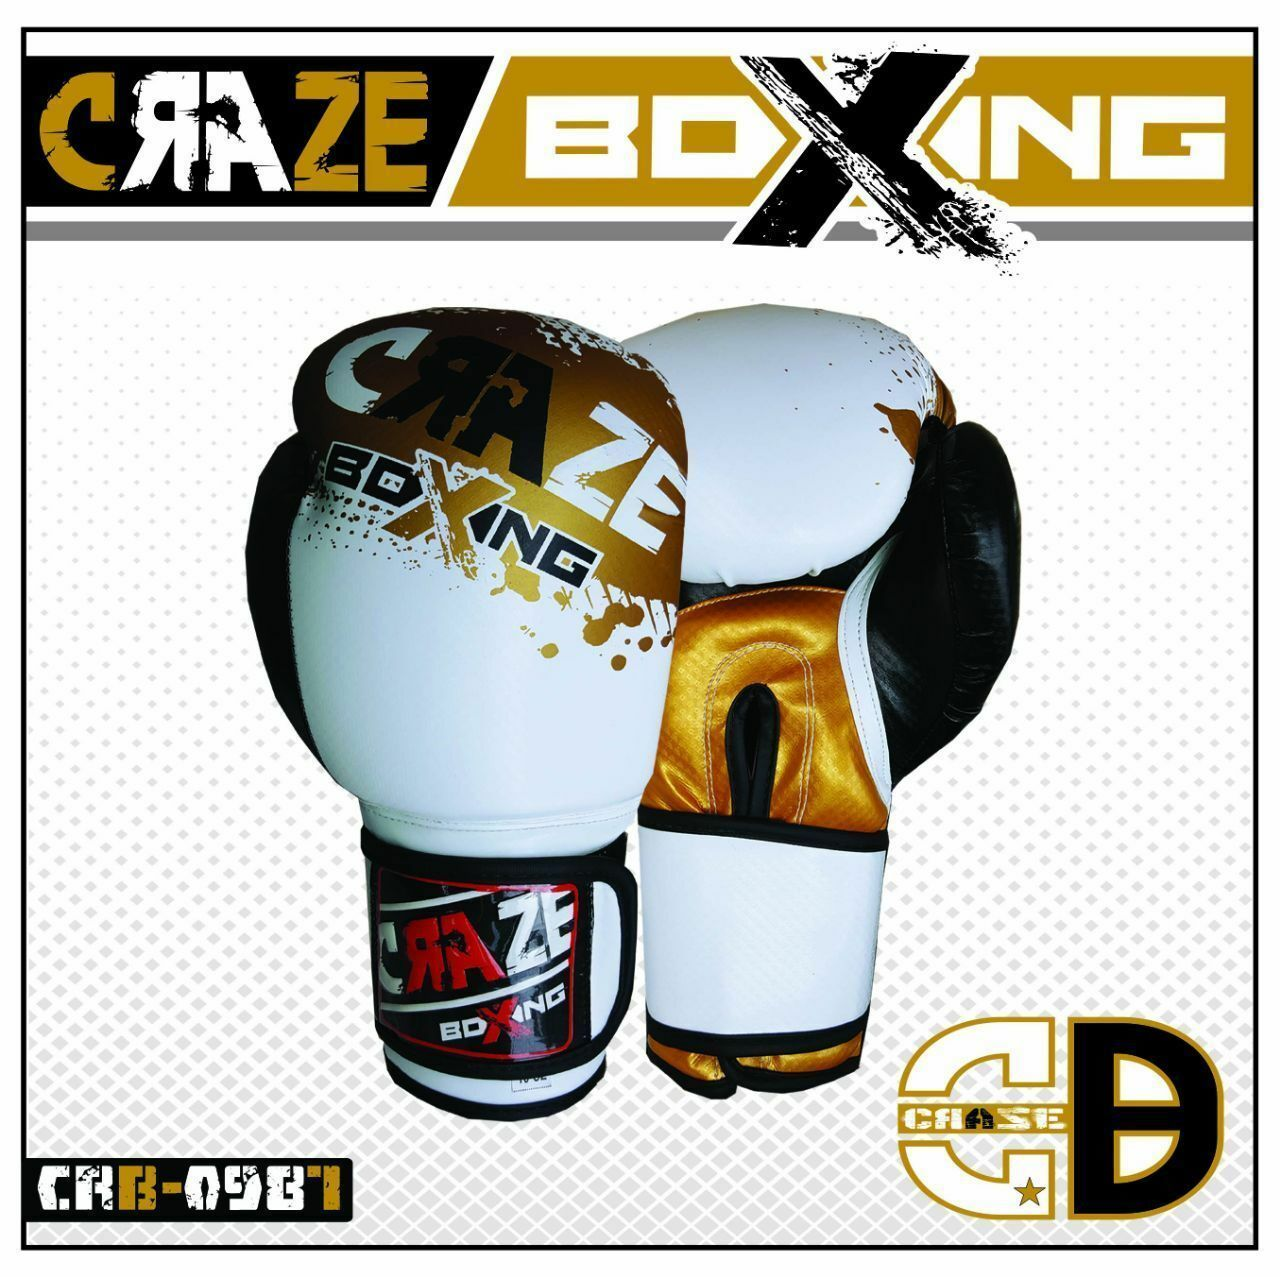 Sparring Grappling Boxing G  s MMA Fighting Punch bag Mitt Ultimate PU Leather  the most fashionable